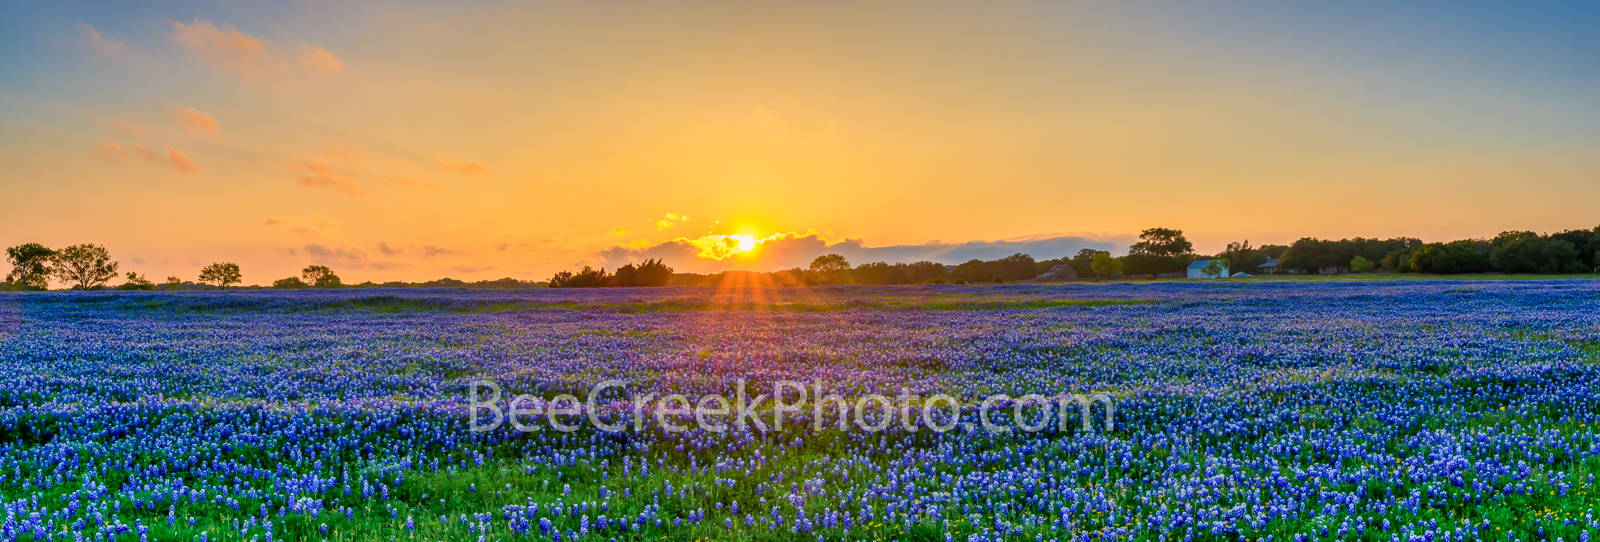 bluebonnets, bluebonnet, texas bluebonnets, texas wildflowers, pictures of wildflowers, bluebonnet pictures, , pano, panorama, golden glow, wildflowers, spring, sunset,, photo